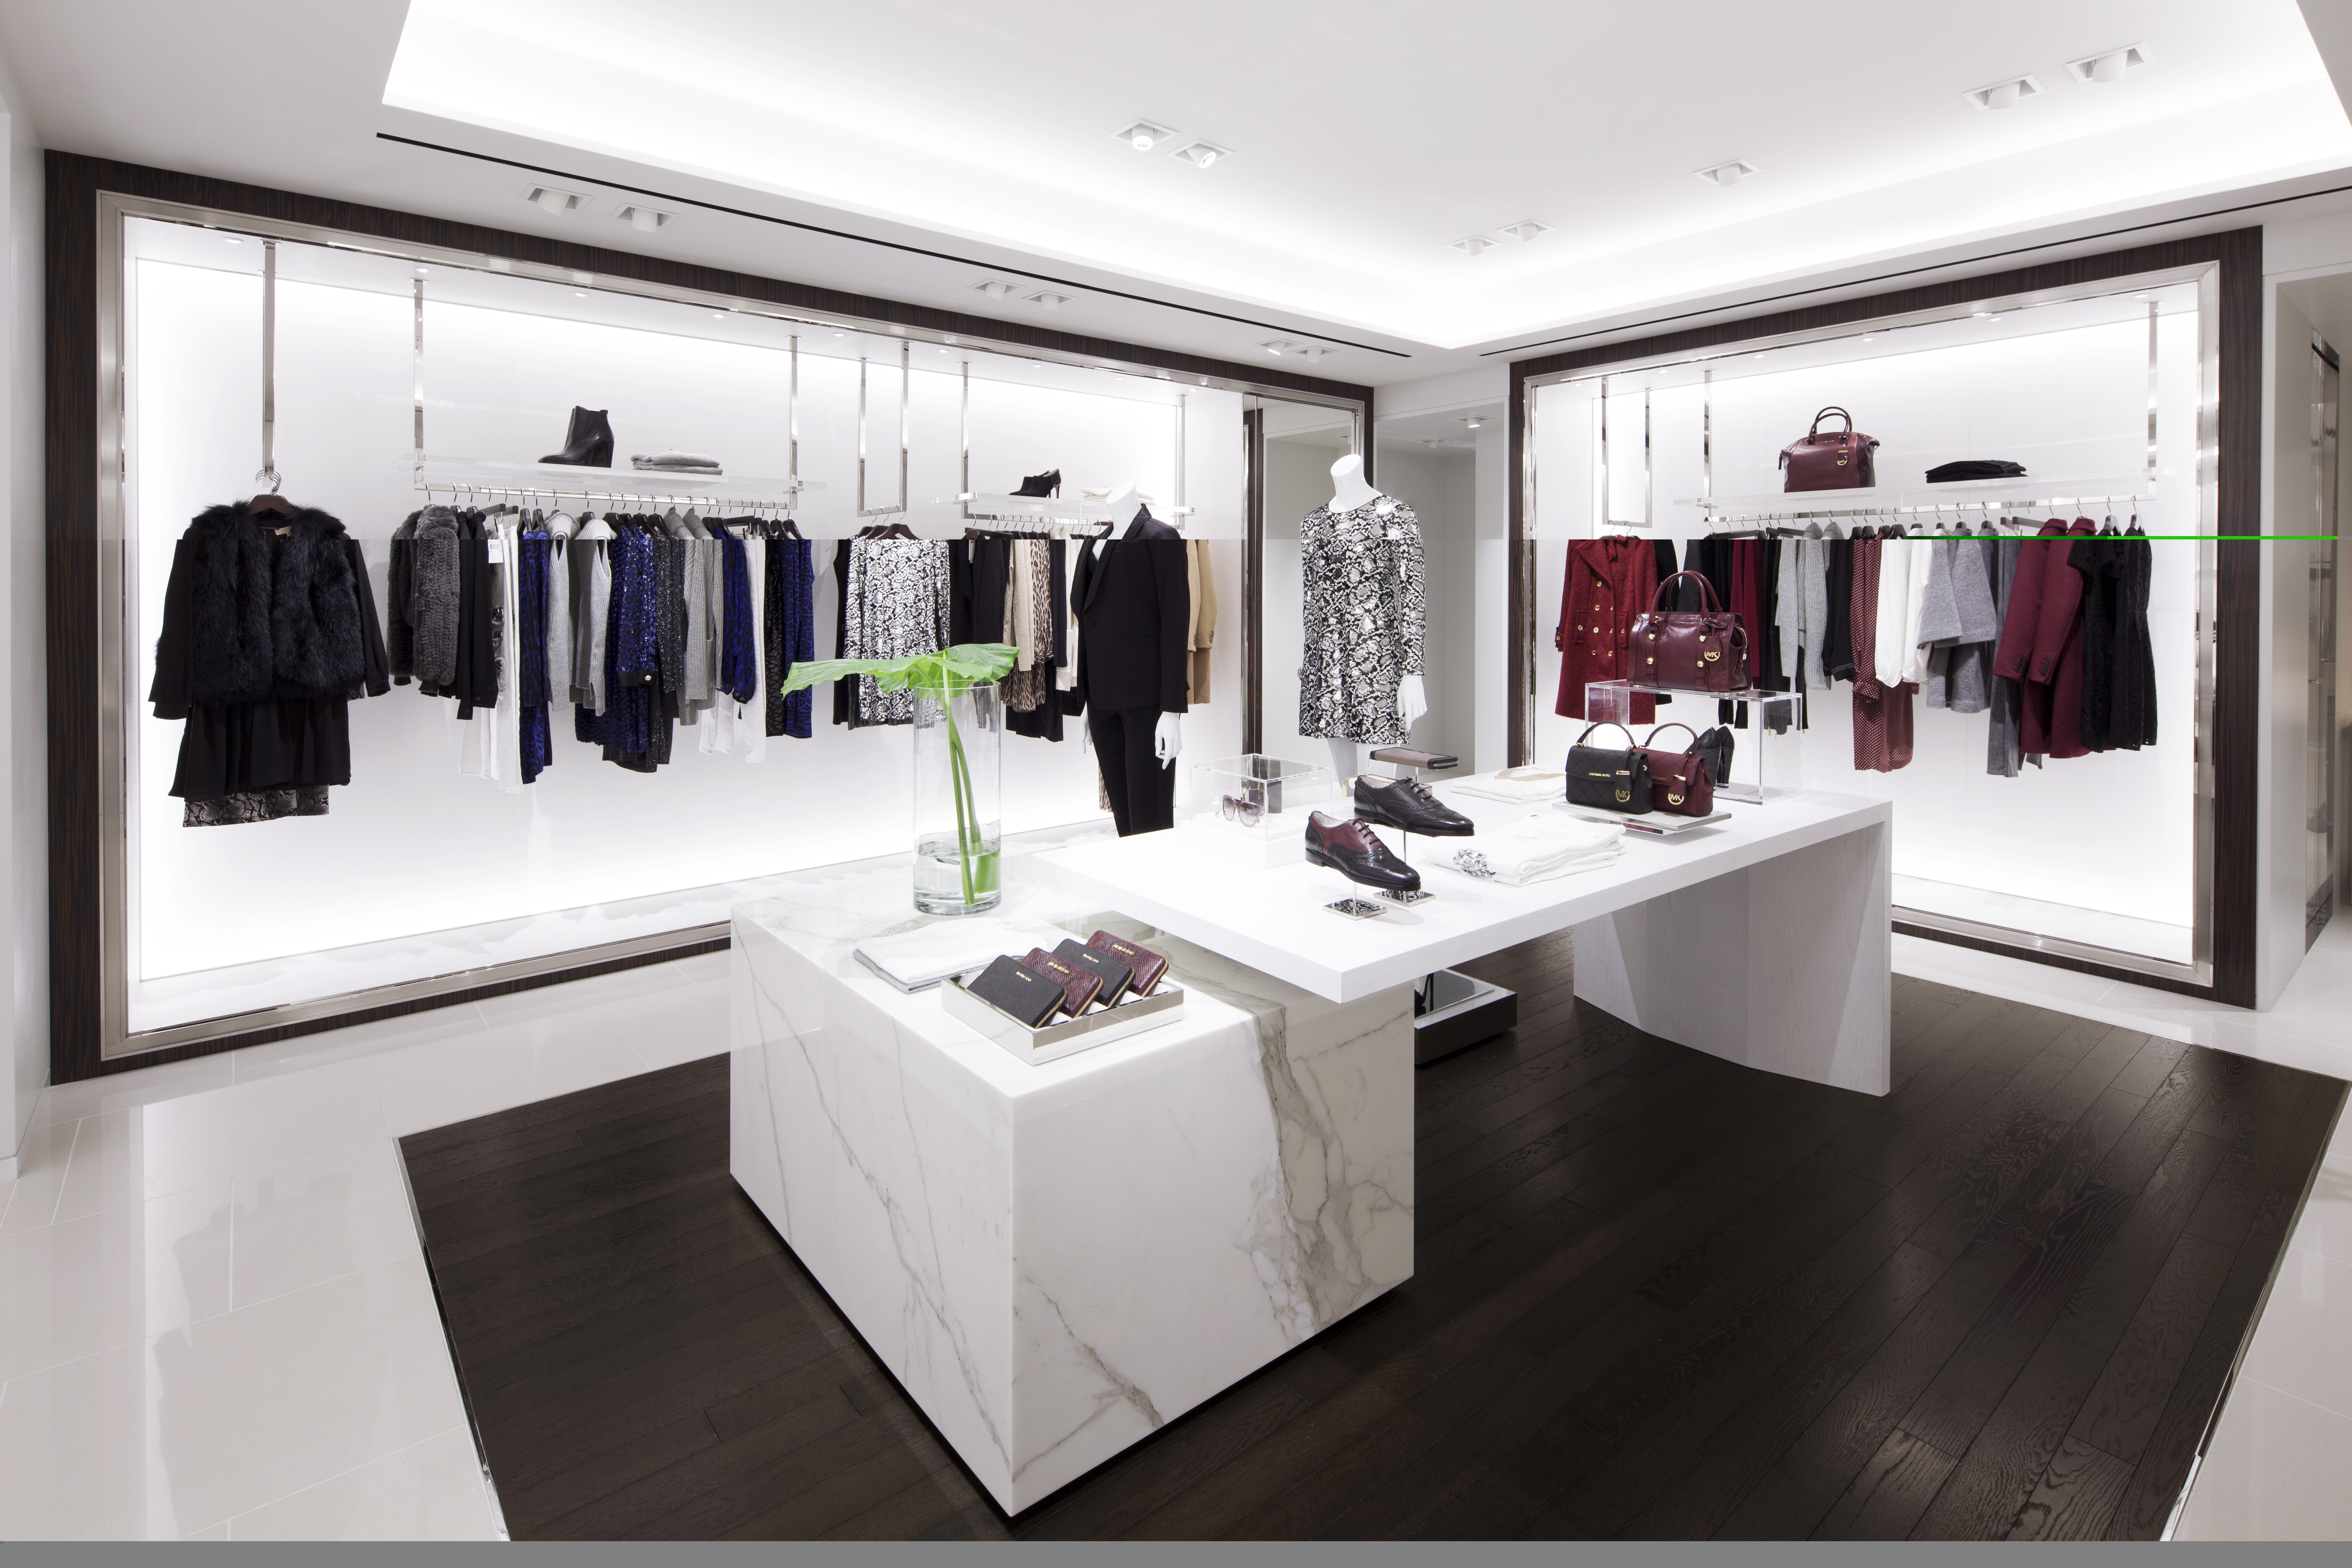 michael kors opens new store in tokyo 39 s ginza cpp luxury. Black Bedroom Furniture Sets. Home Design Ideas